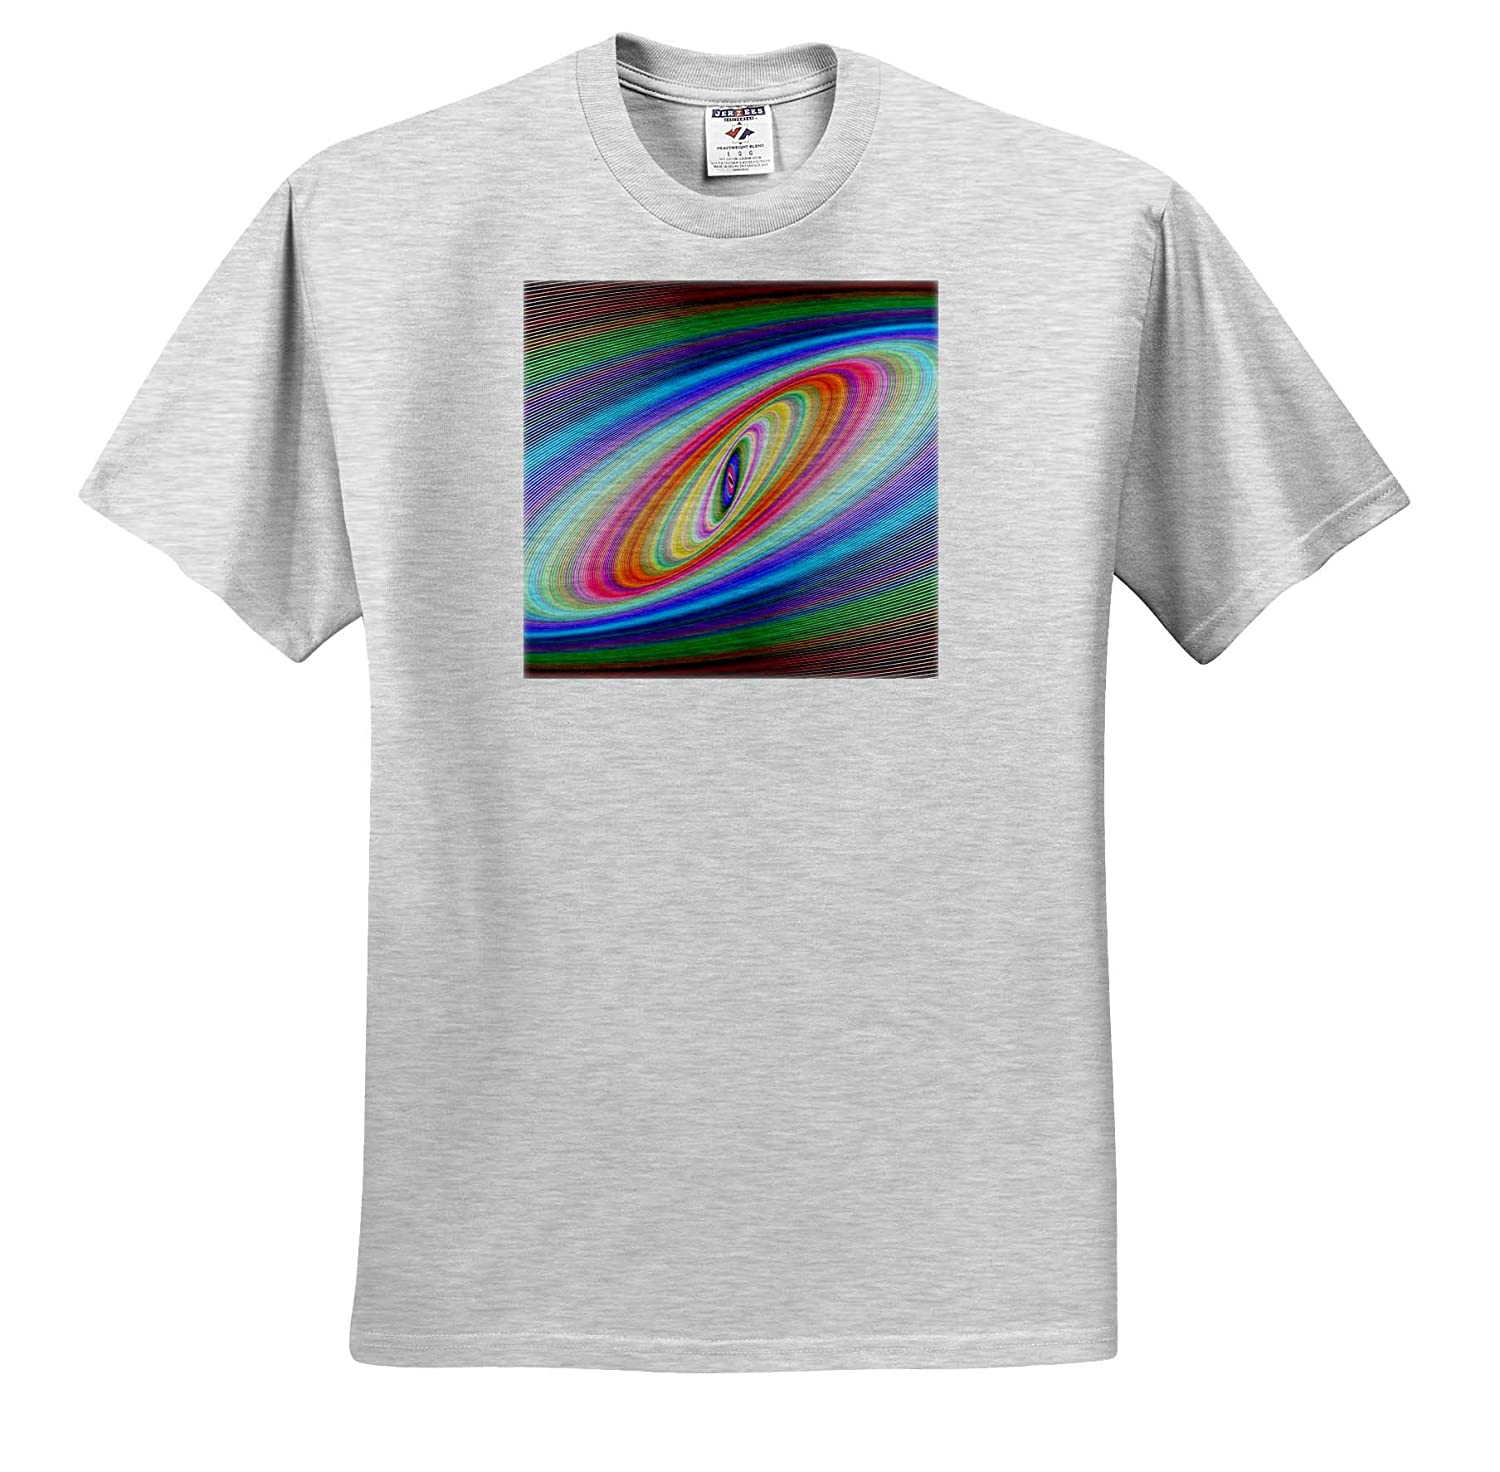 Fractal Art 3dRose Lens Art by Florene Image of Rainbow Colored Space Rings Fractal T-Shirts